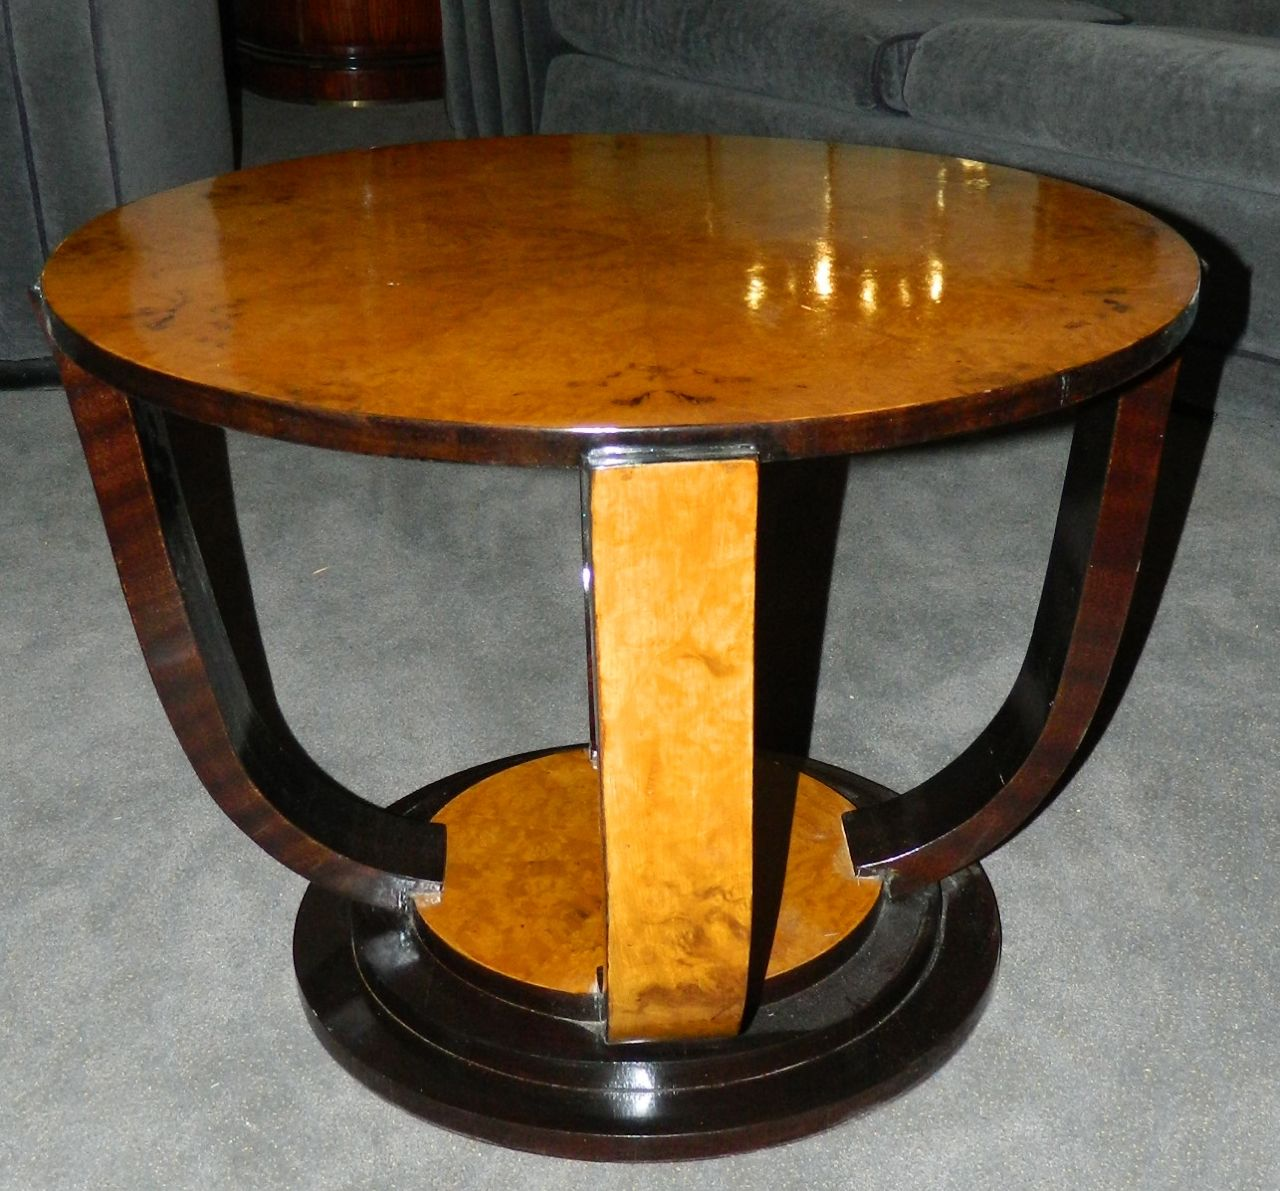 two tone art deco round table sold items small tables art deco collection. Black Bedroom Furniture Sets. Home Design Ideas